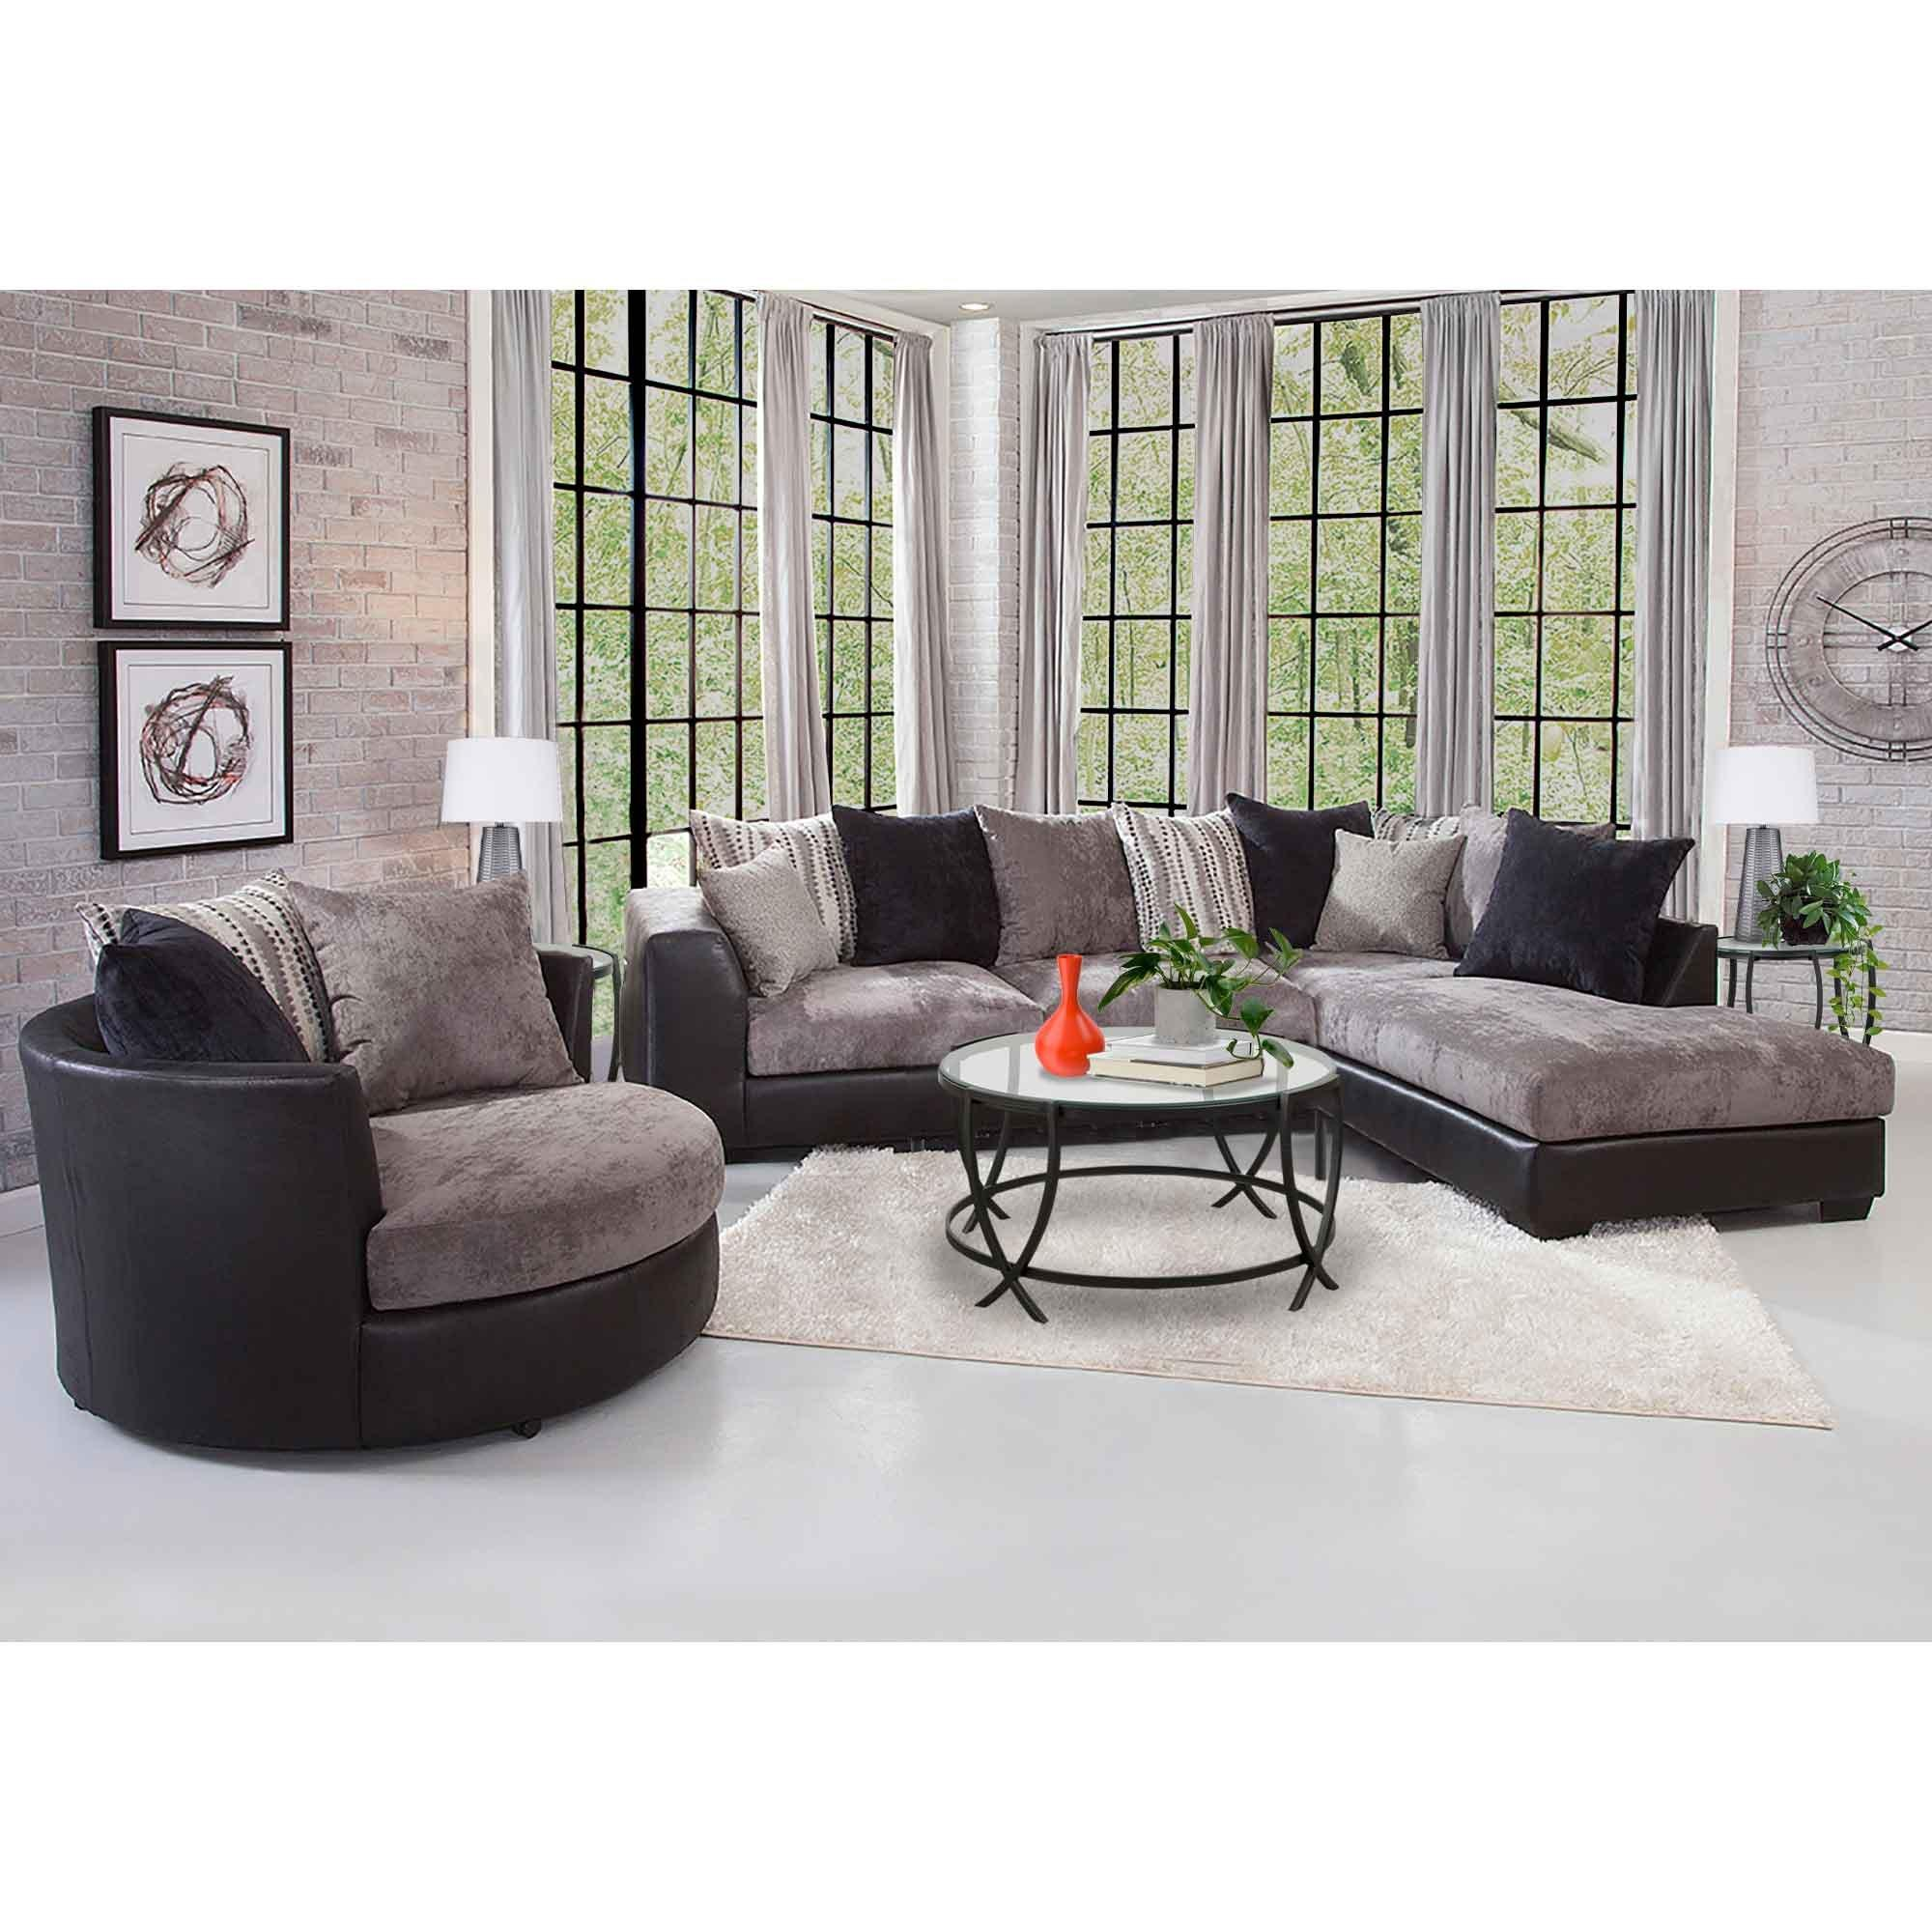 To Own Woodhaven 8 Piece Jamal, Aarons Living Room Sets